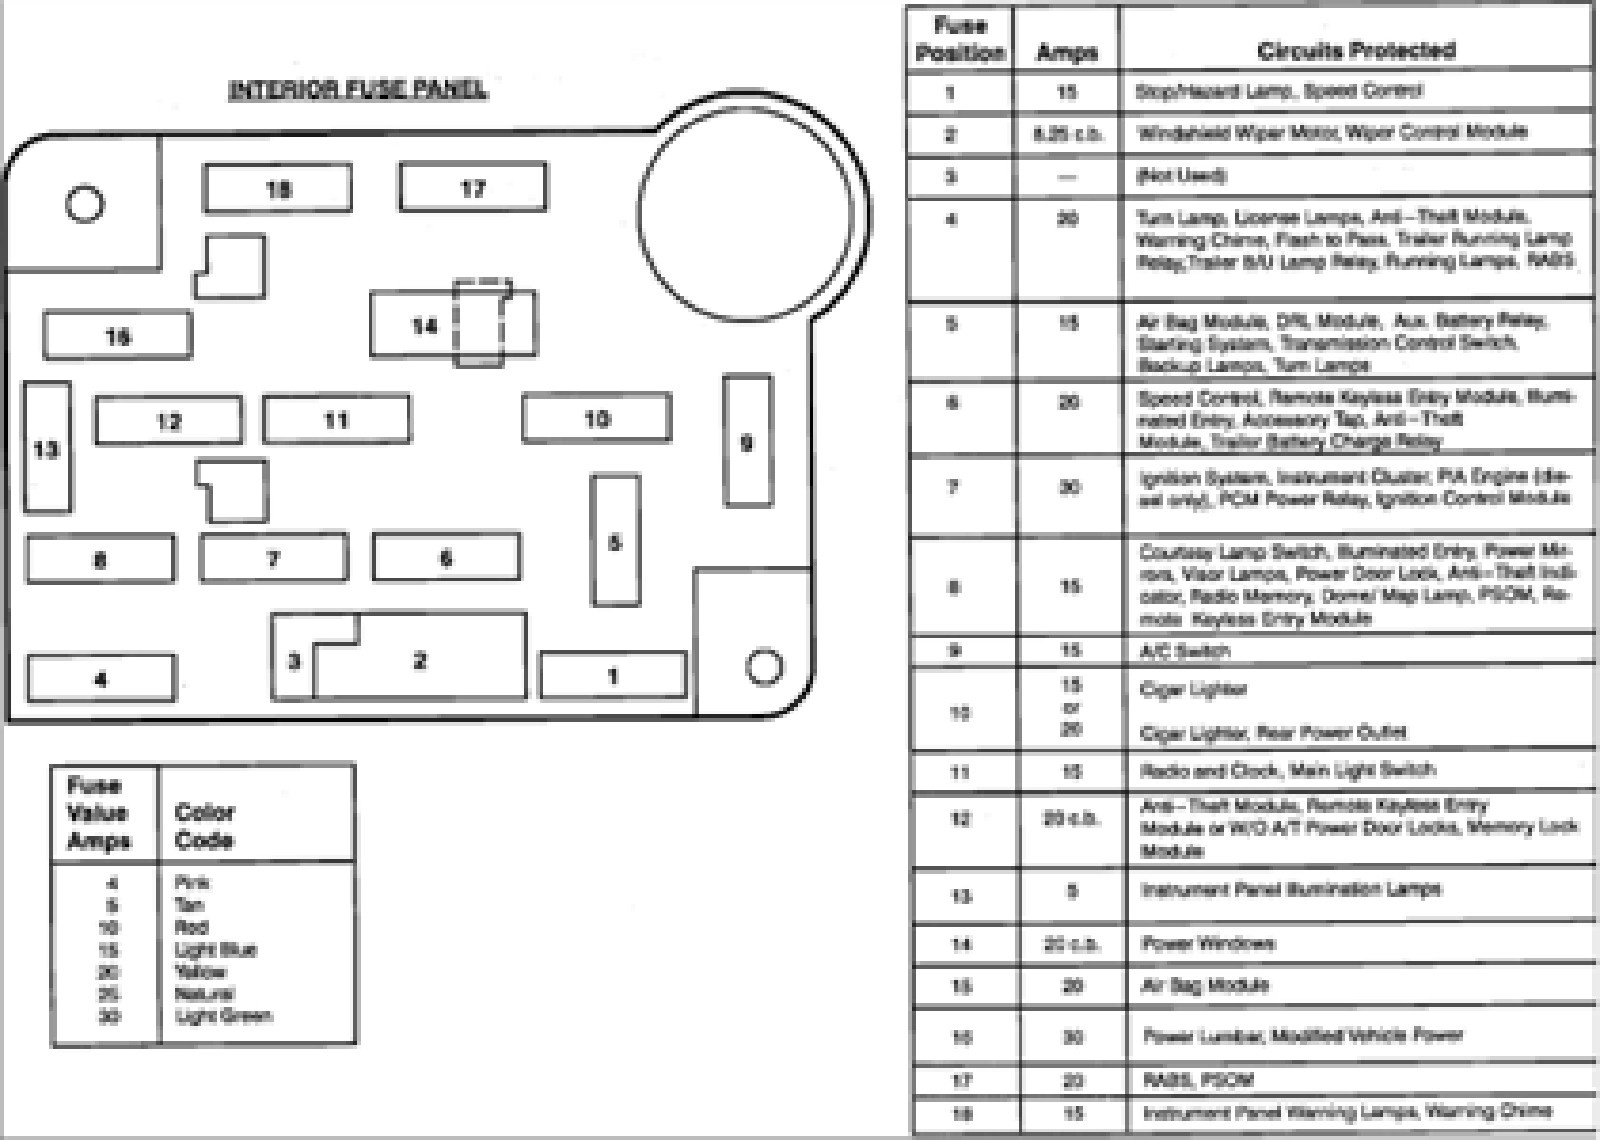 pic 8862473225641007897 1600x1200 1989 ford ranger fuse box diagram 1994 ford ranger fuse box layout 98 f150 fuse box diagram at mifinder.co